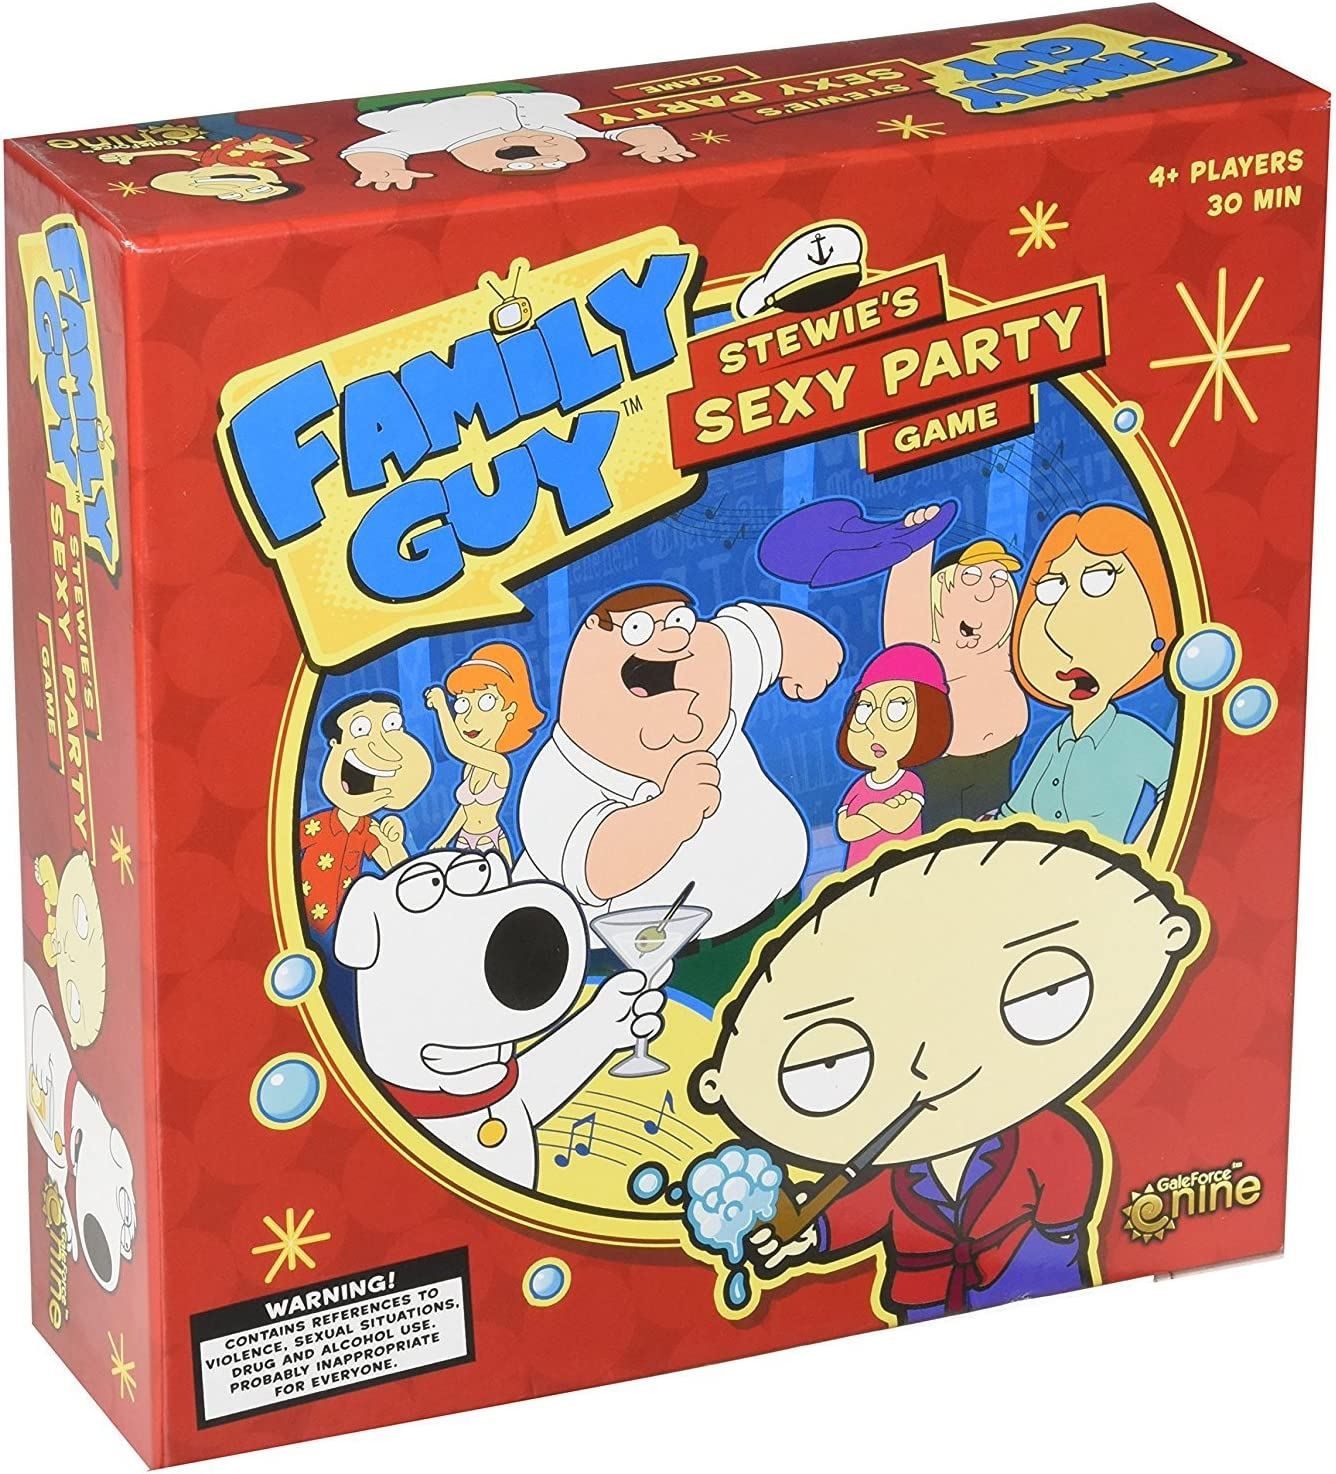 Gale Force Nine GF9FG001 Family Guy: Stewies Sexy Party Game - Juego de Estrategia [Importado de Alemania]: Amazon.es: Juguetes y juegos